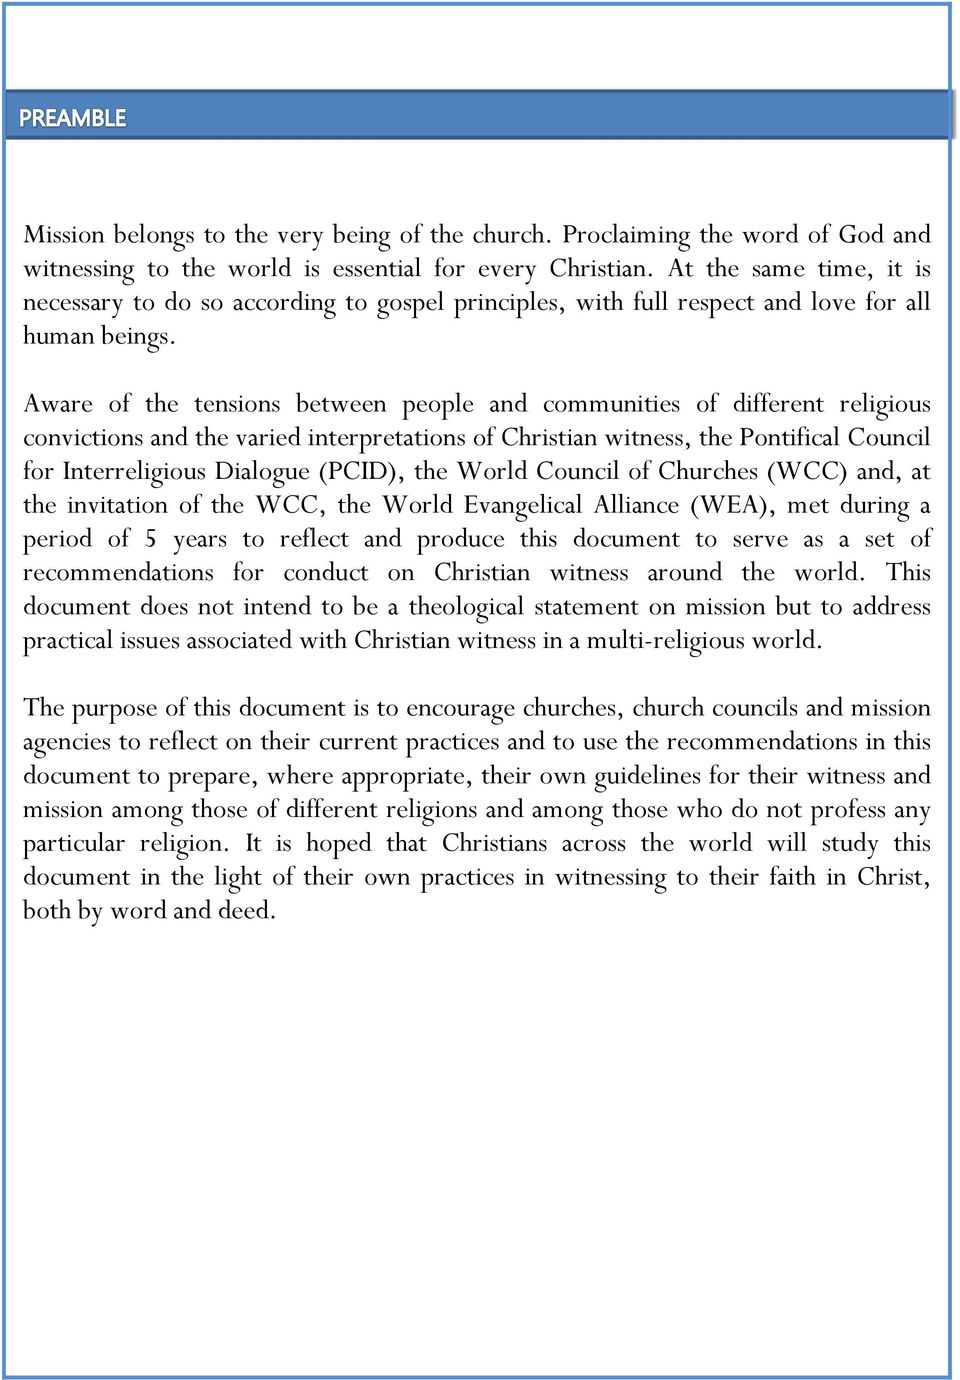 Aware of the tensions between people and communities of different religious convictions and the varied interpretations of Christian witness, the Pontifical Council for Interreligious Dialogue (PCID),